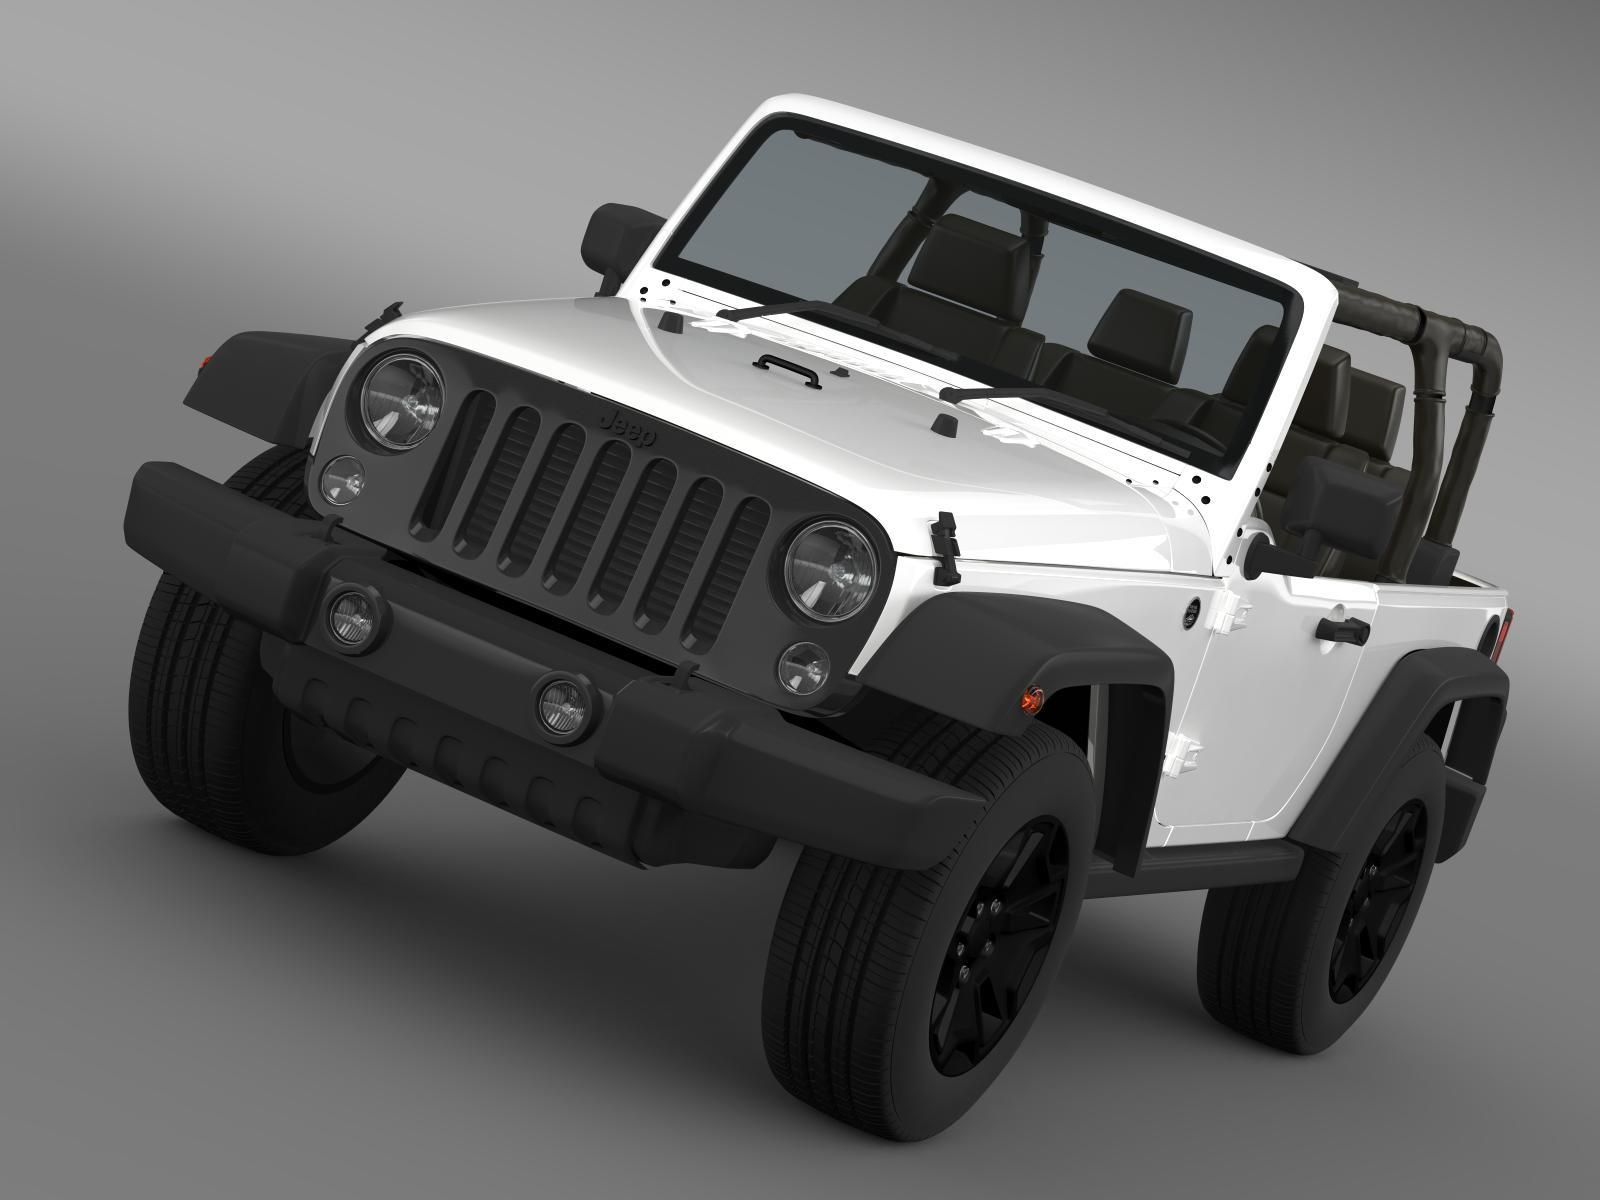 Jeep Wrangler Willys 2014 Jeep wrangler, Jeep, Willys jeep